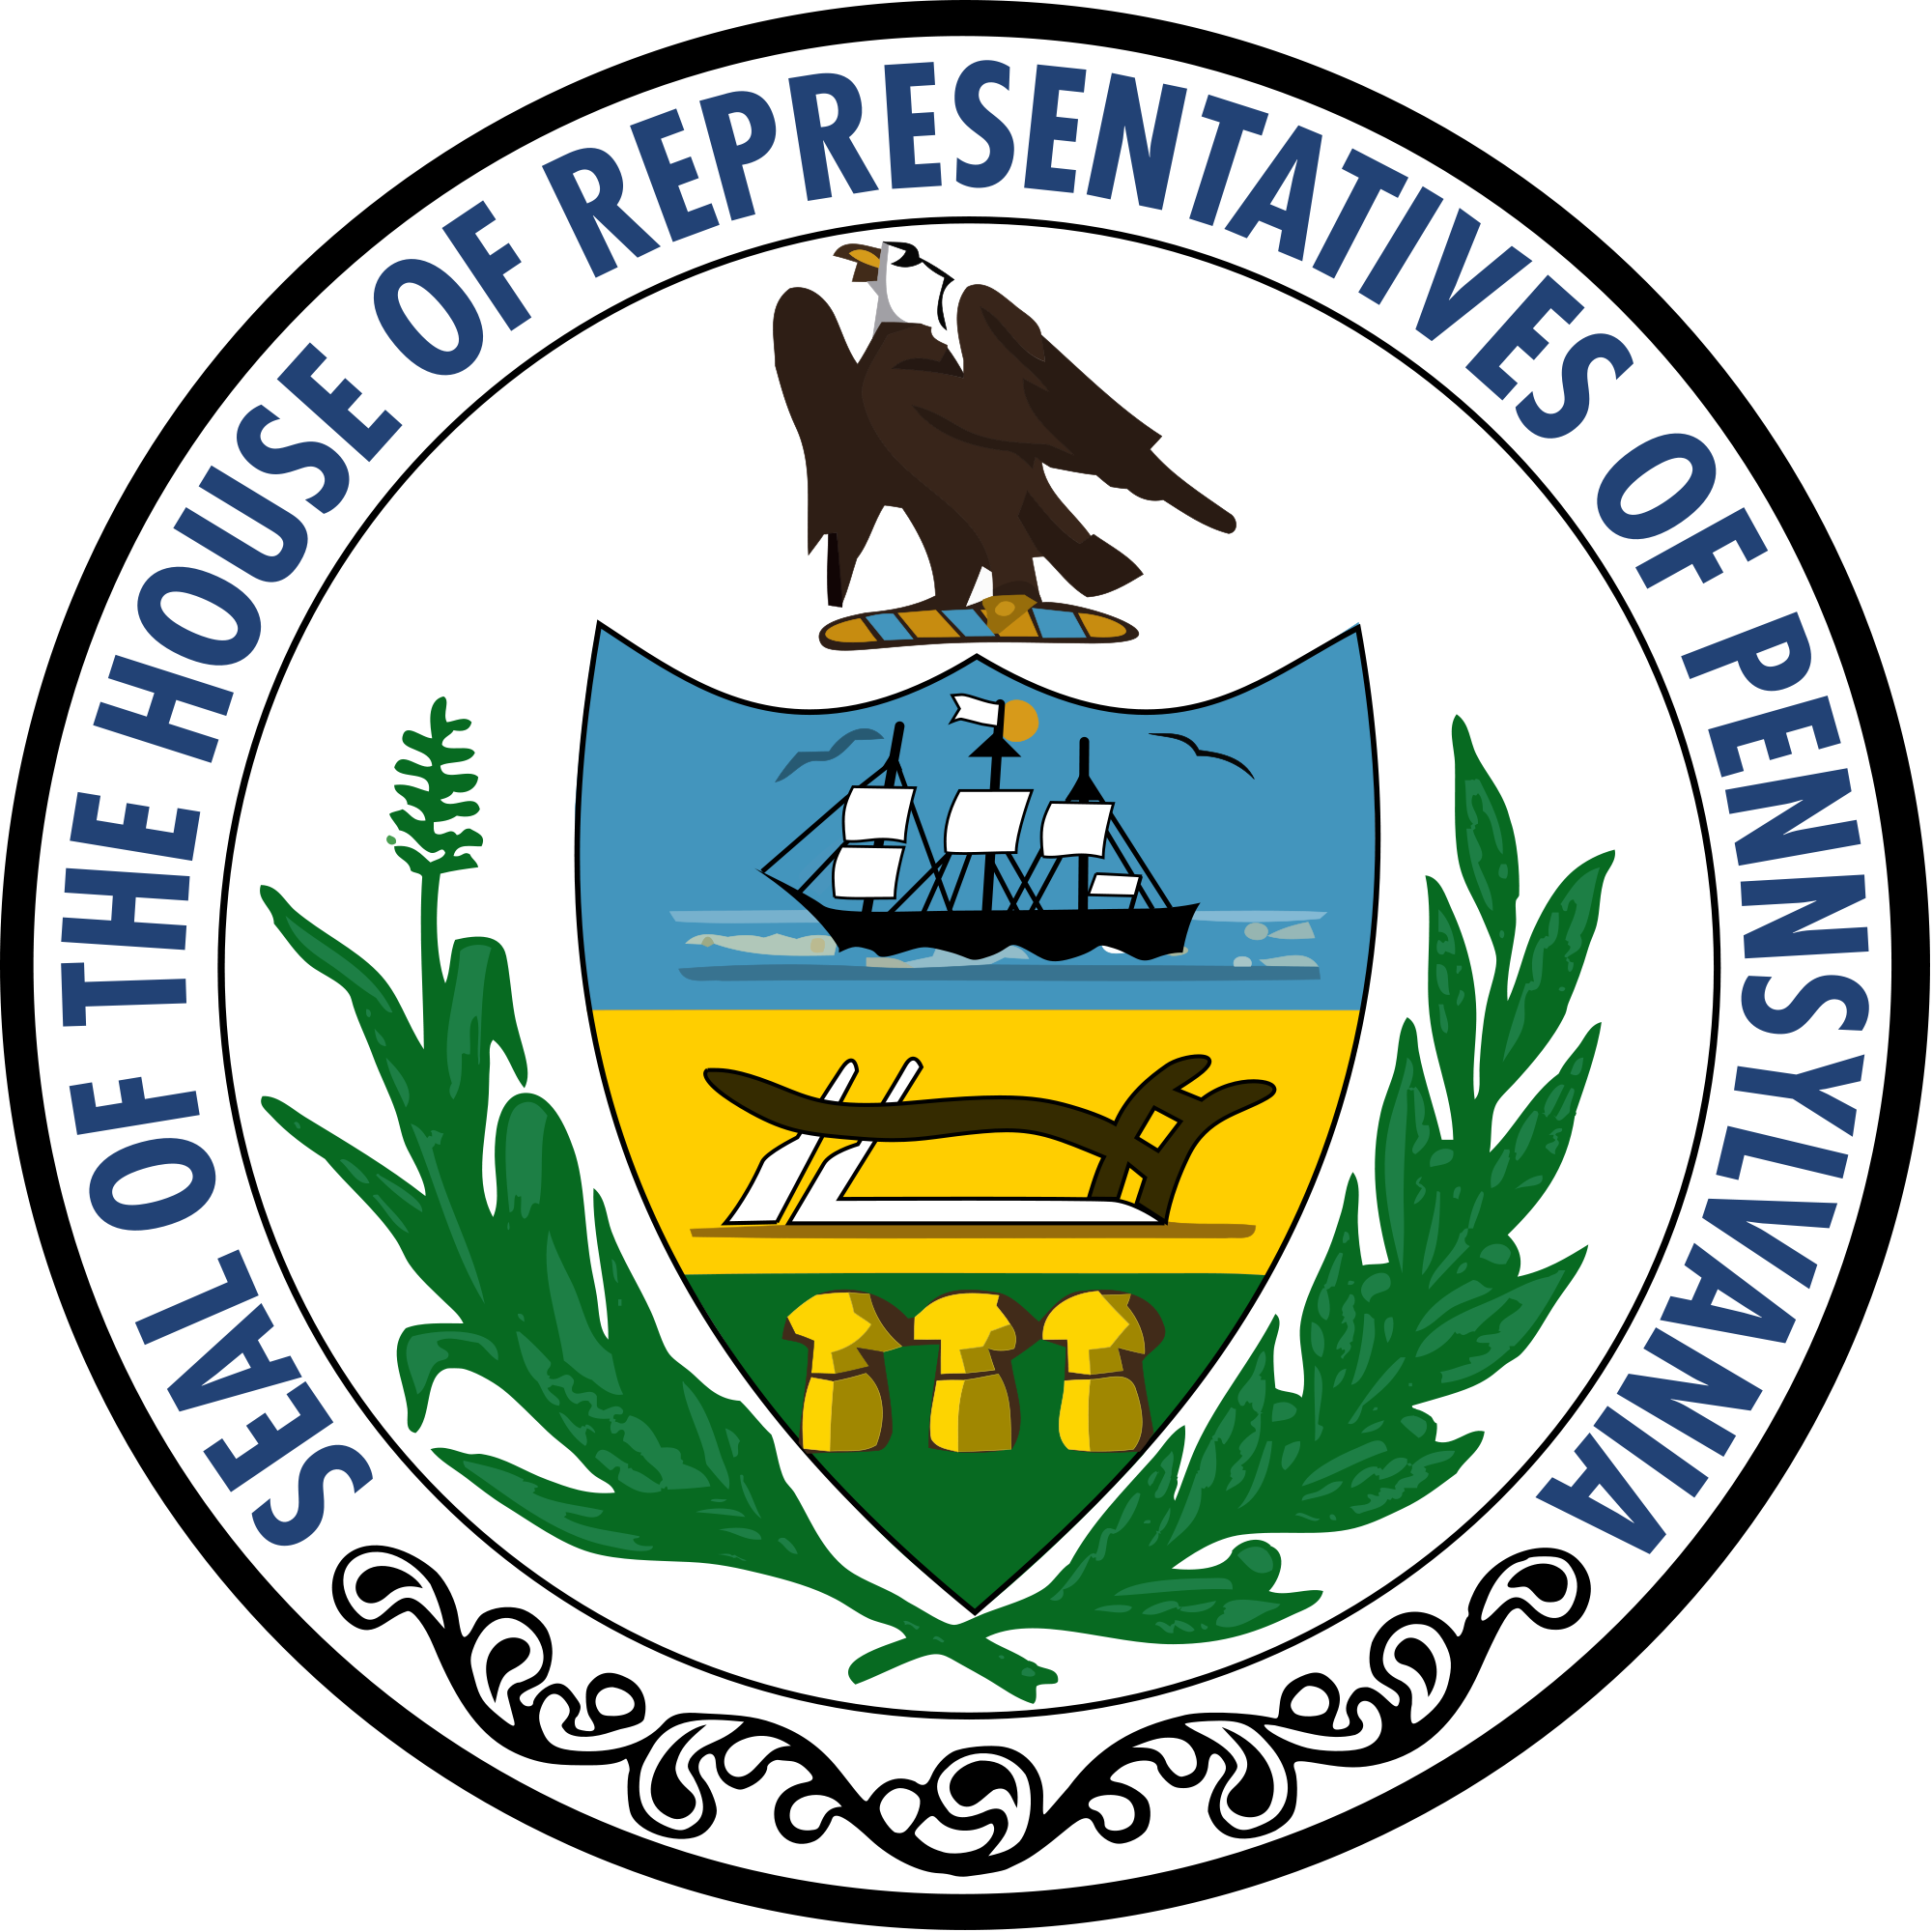 Pennsylvania state house clipart graphic black and white library File:Seal of the Pennsylvania House of Representatives.svg ... graphic black and white library